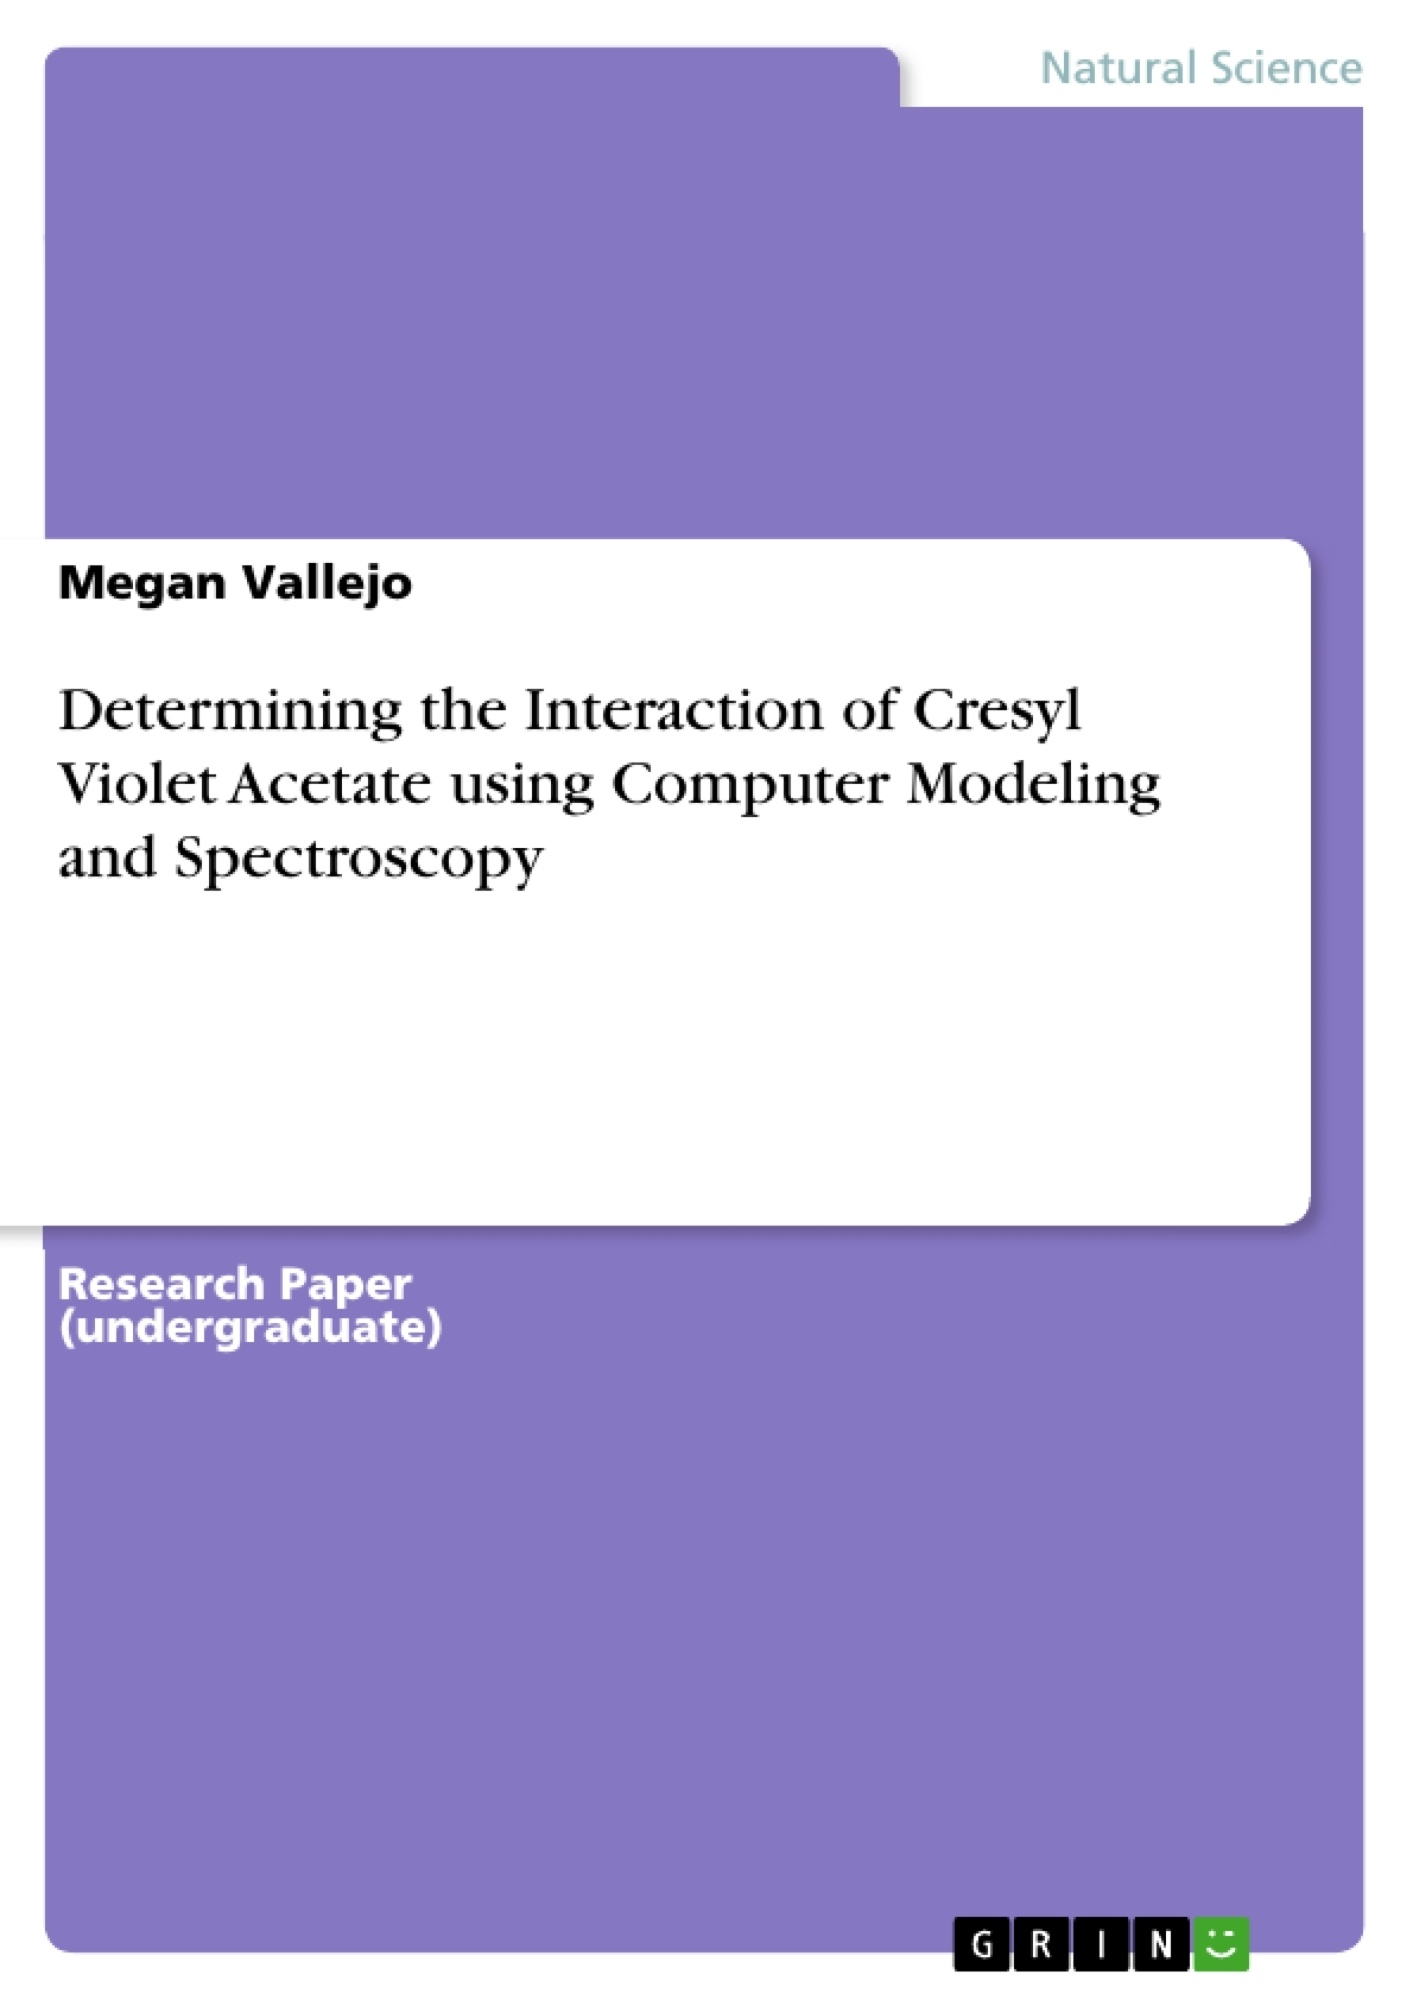 Title: Determining the Interaction of Cresyl Violet Acetate using Computer Modeling and Spectroscopy